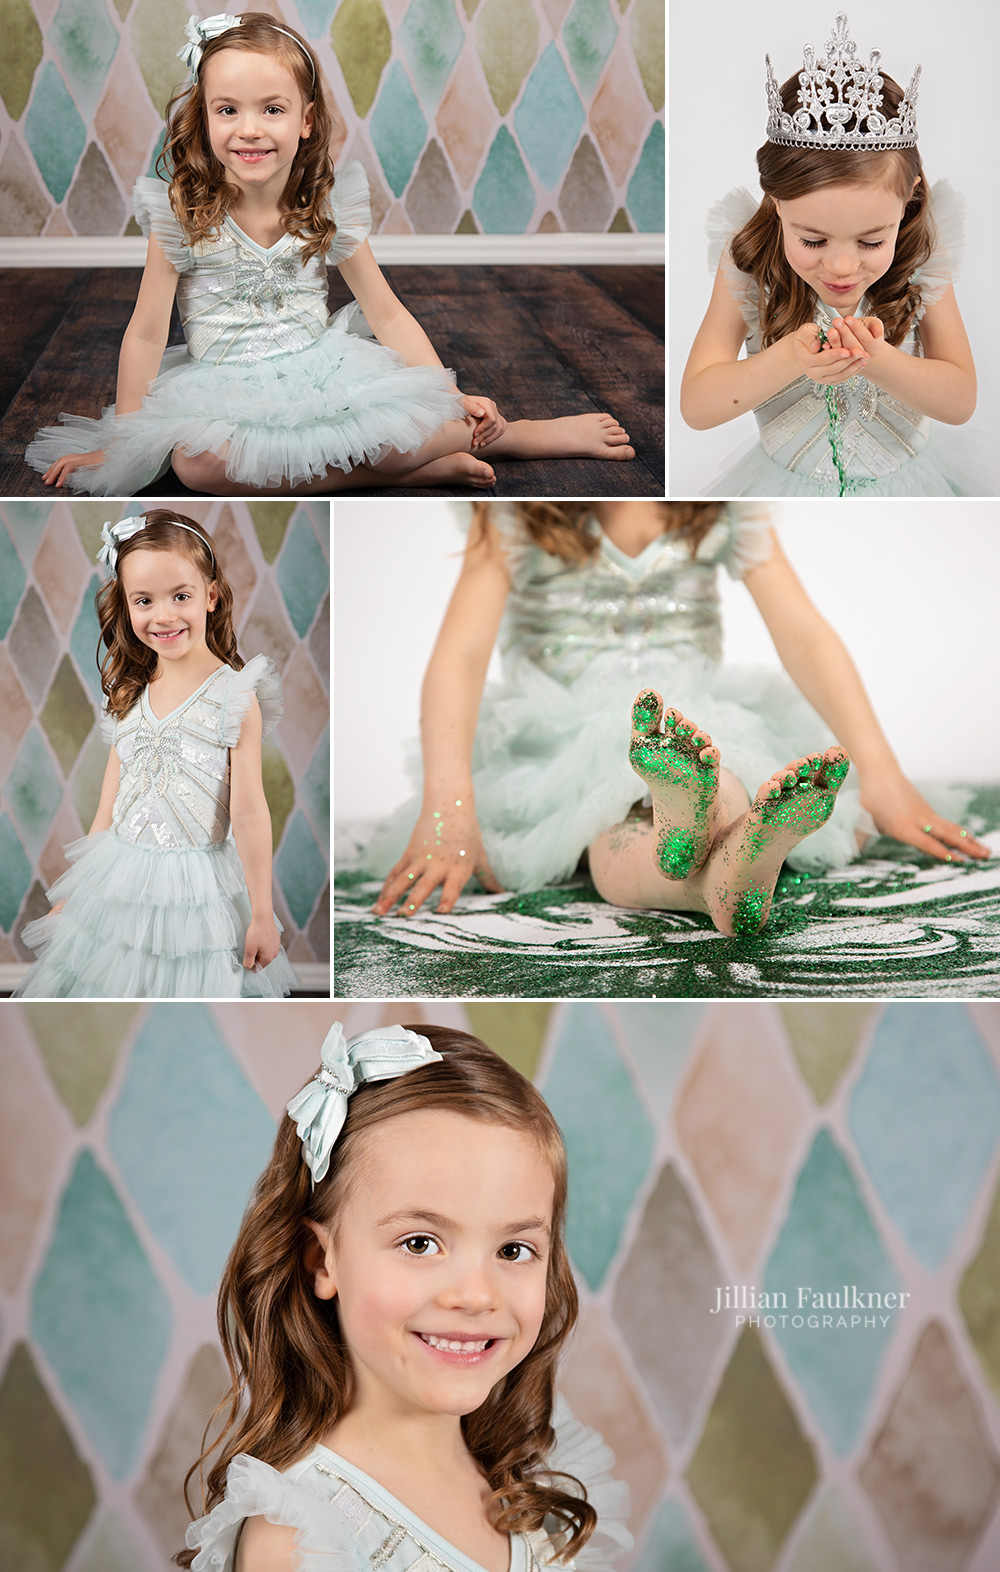 Jillian Faulkner is a child and family photographer located in Calgary, Alberta offering portrait photography sessions in studio and on location. Jillian is passionate about milestone photography sessions for children and offers a large variety of backdrop selections to her clients.